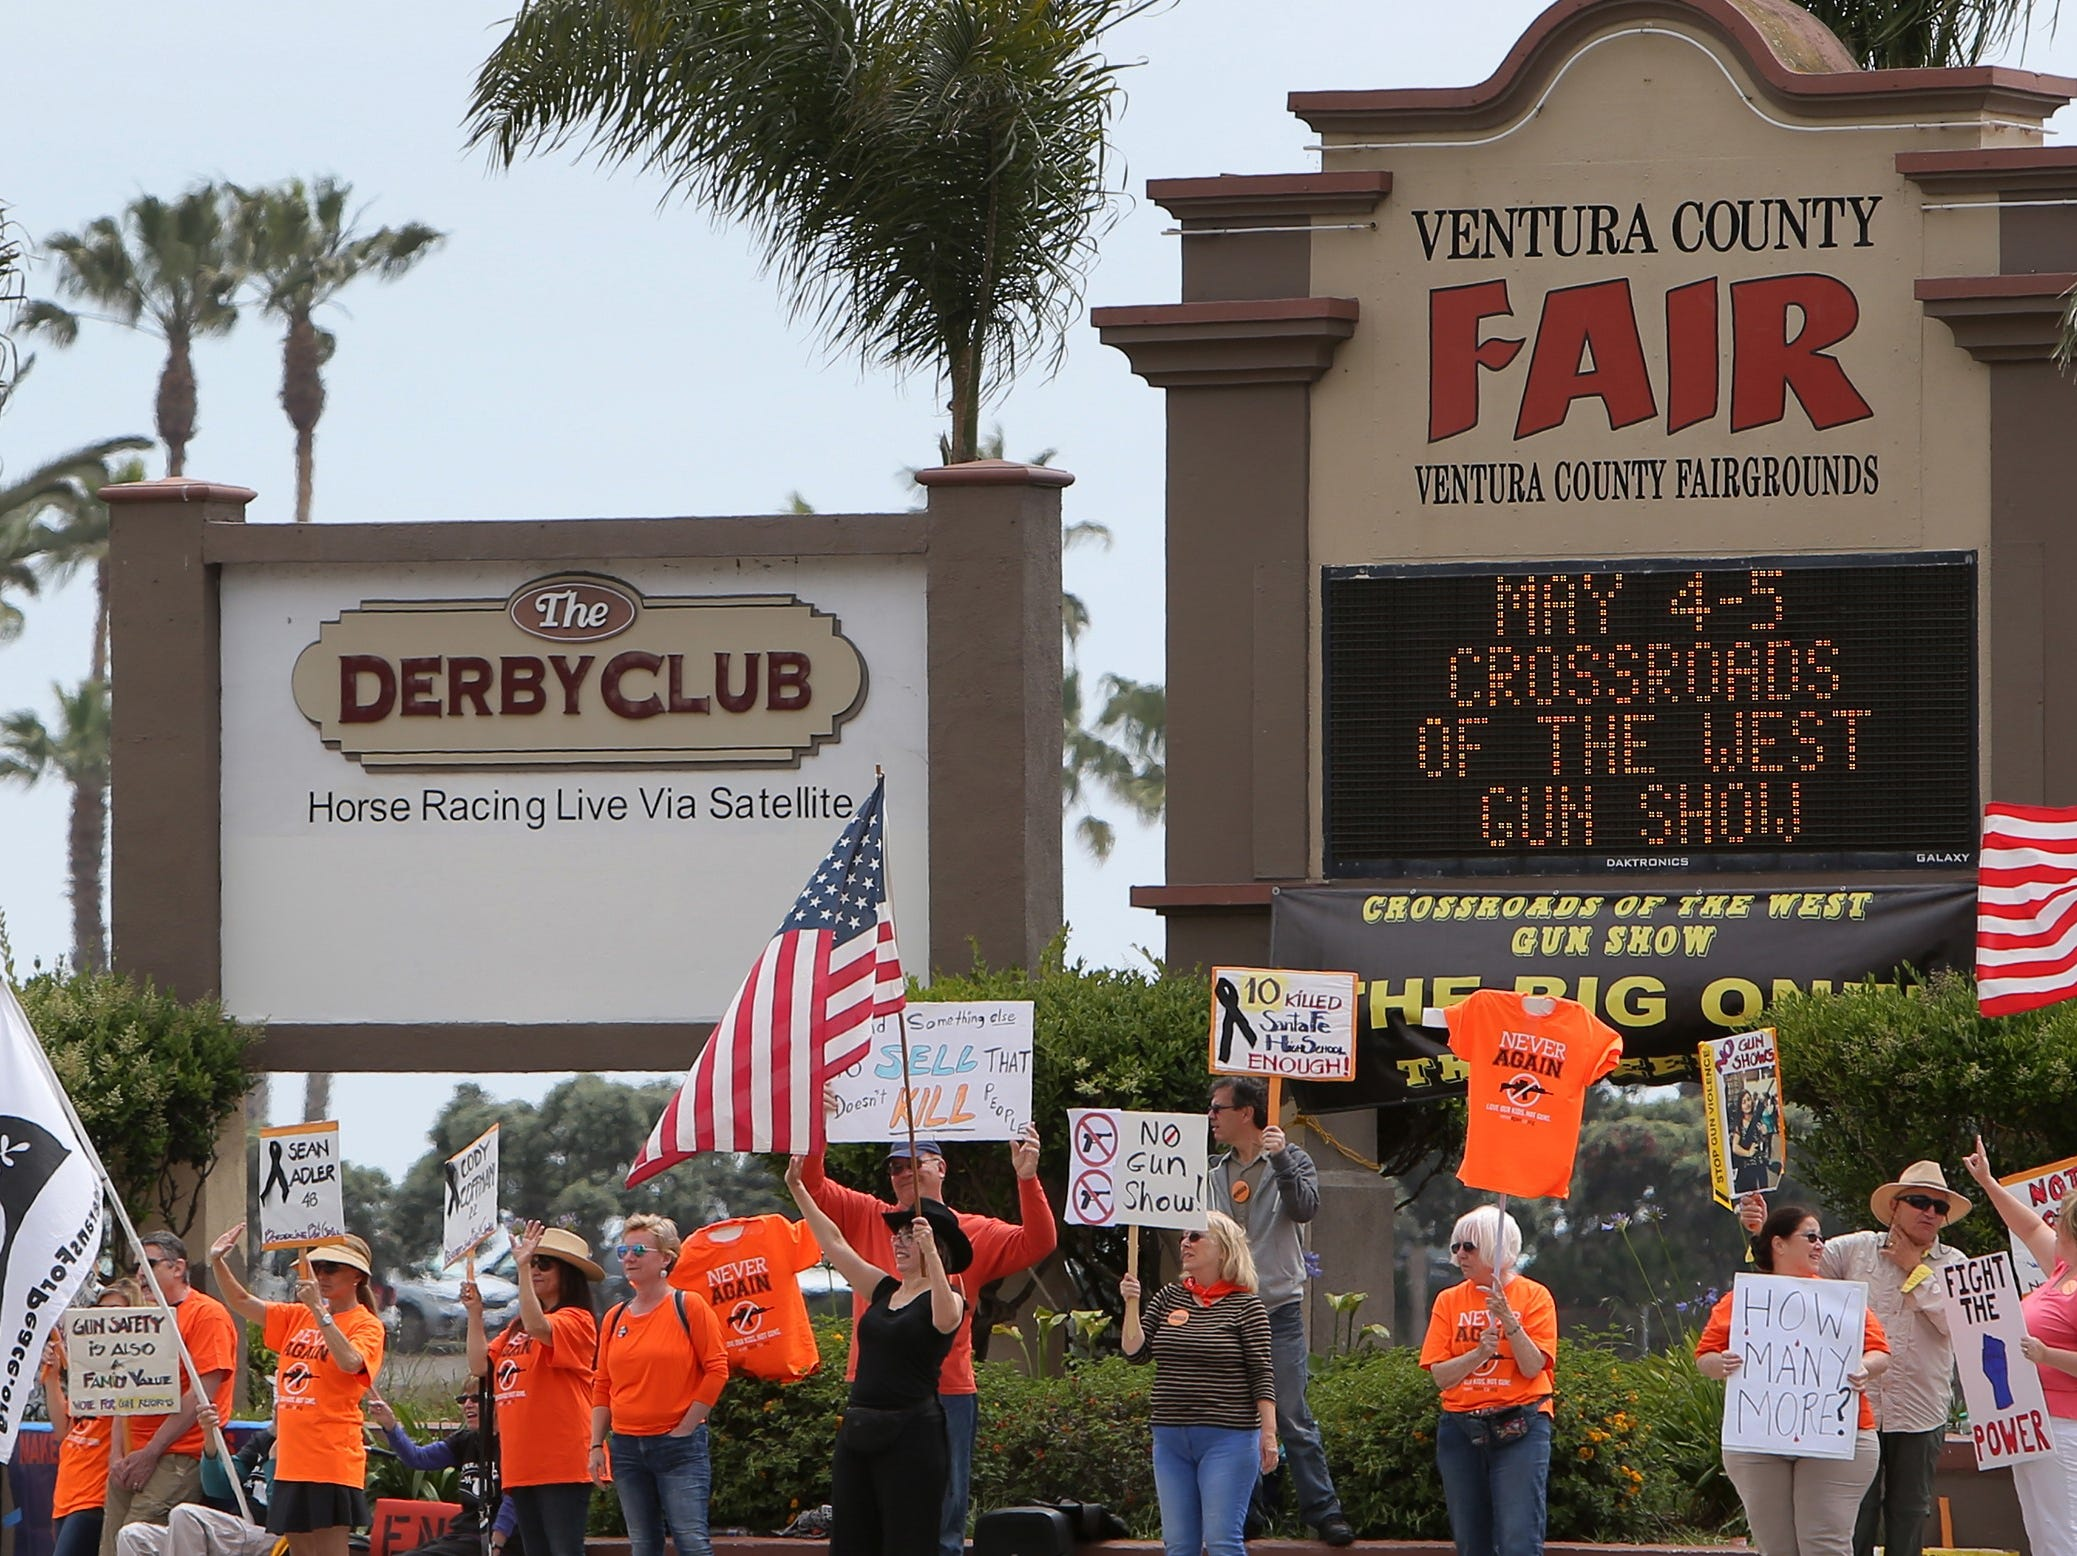 Demonstrators in favor of gun control were out in force Saturday during the Crossroads of the West Gun Show that at the Ventura County Fairgrounds. They want the fairgrounds to stop hosting the gun show.